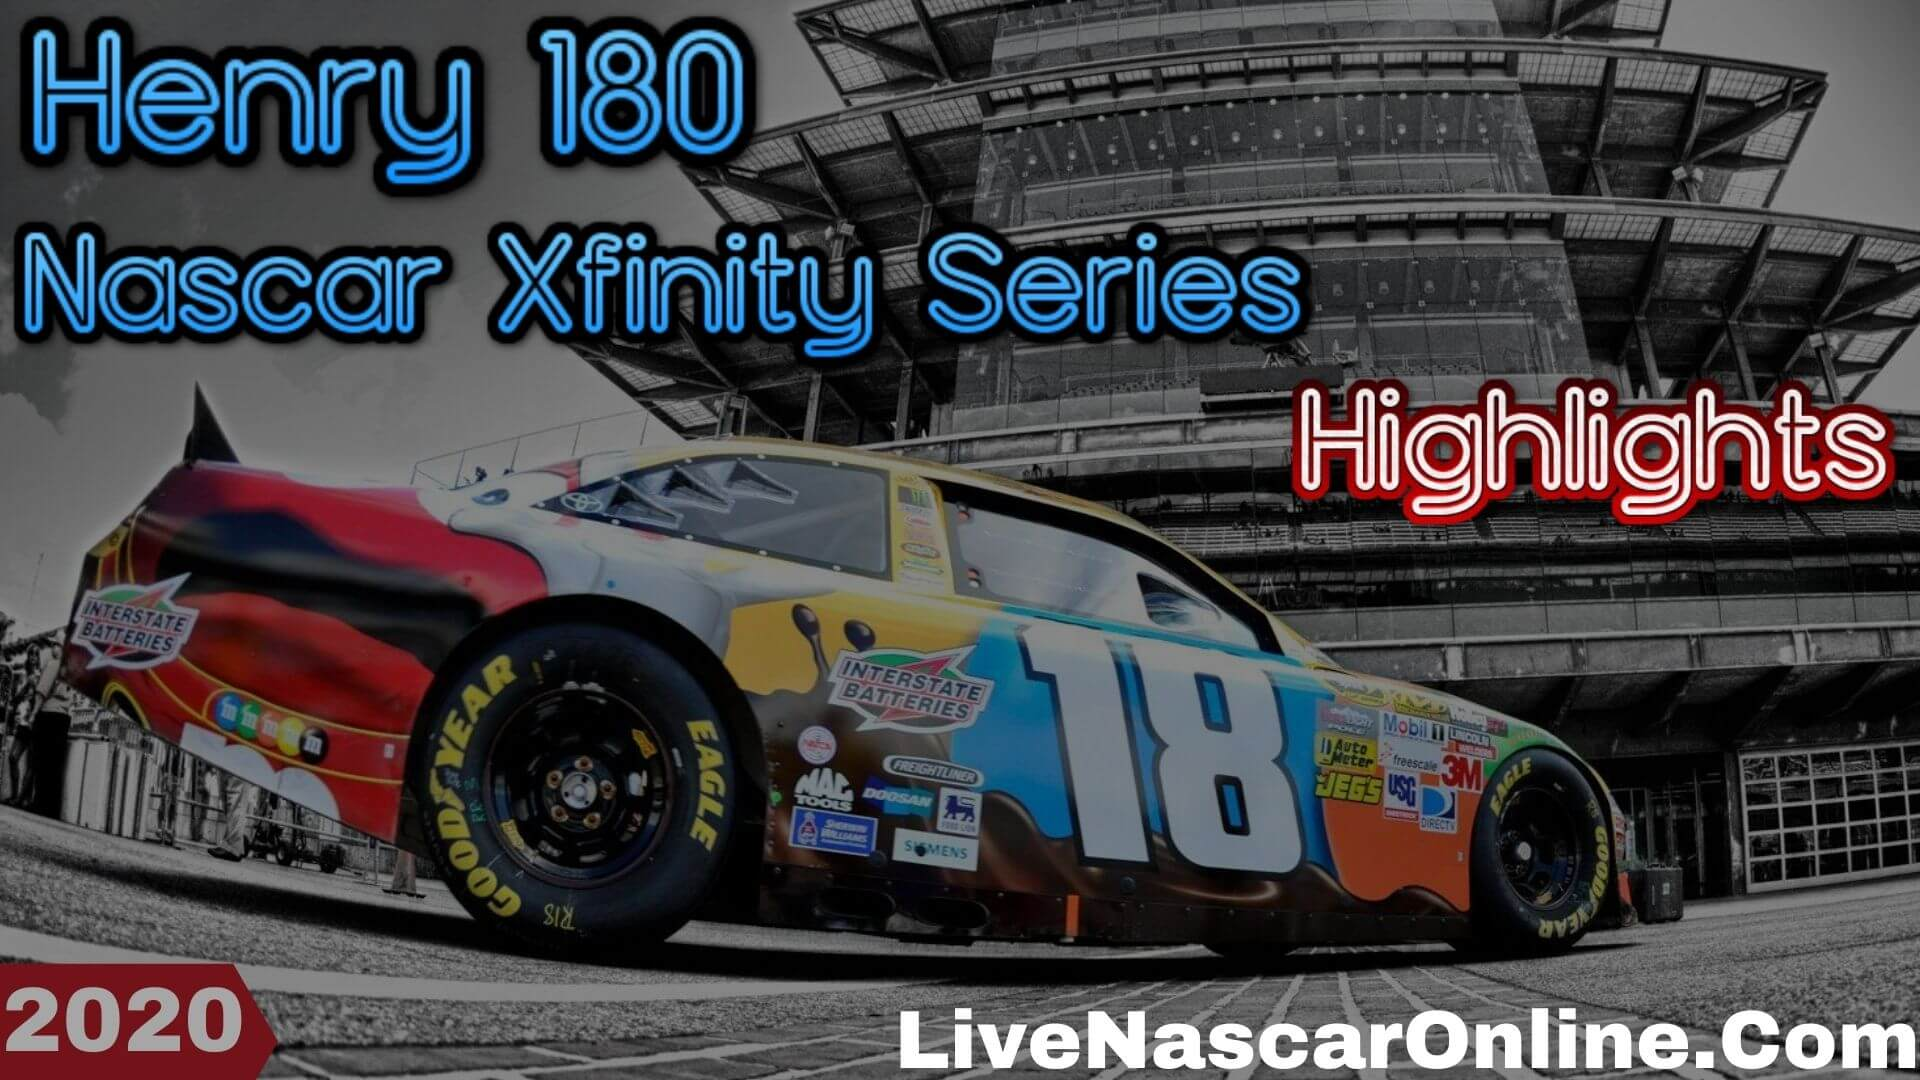 Henry 180 Nascar Xfinity Series Highlights 2020